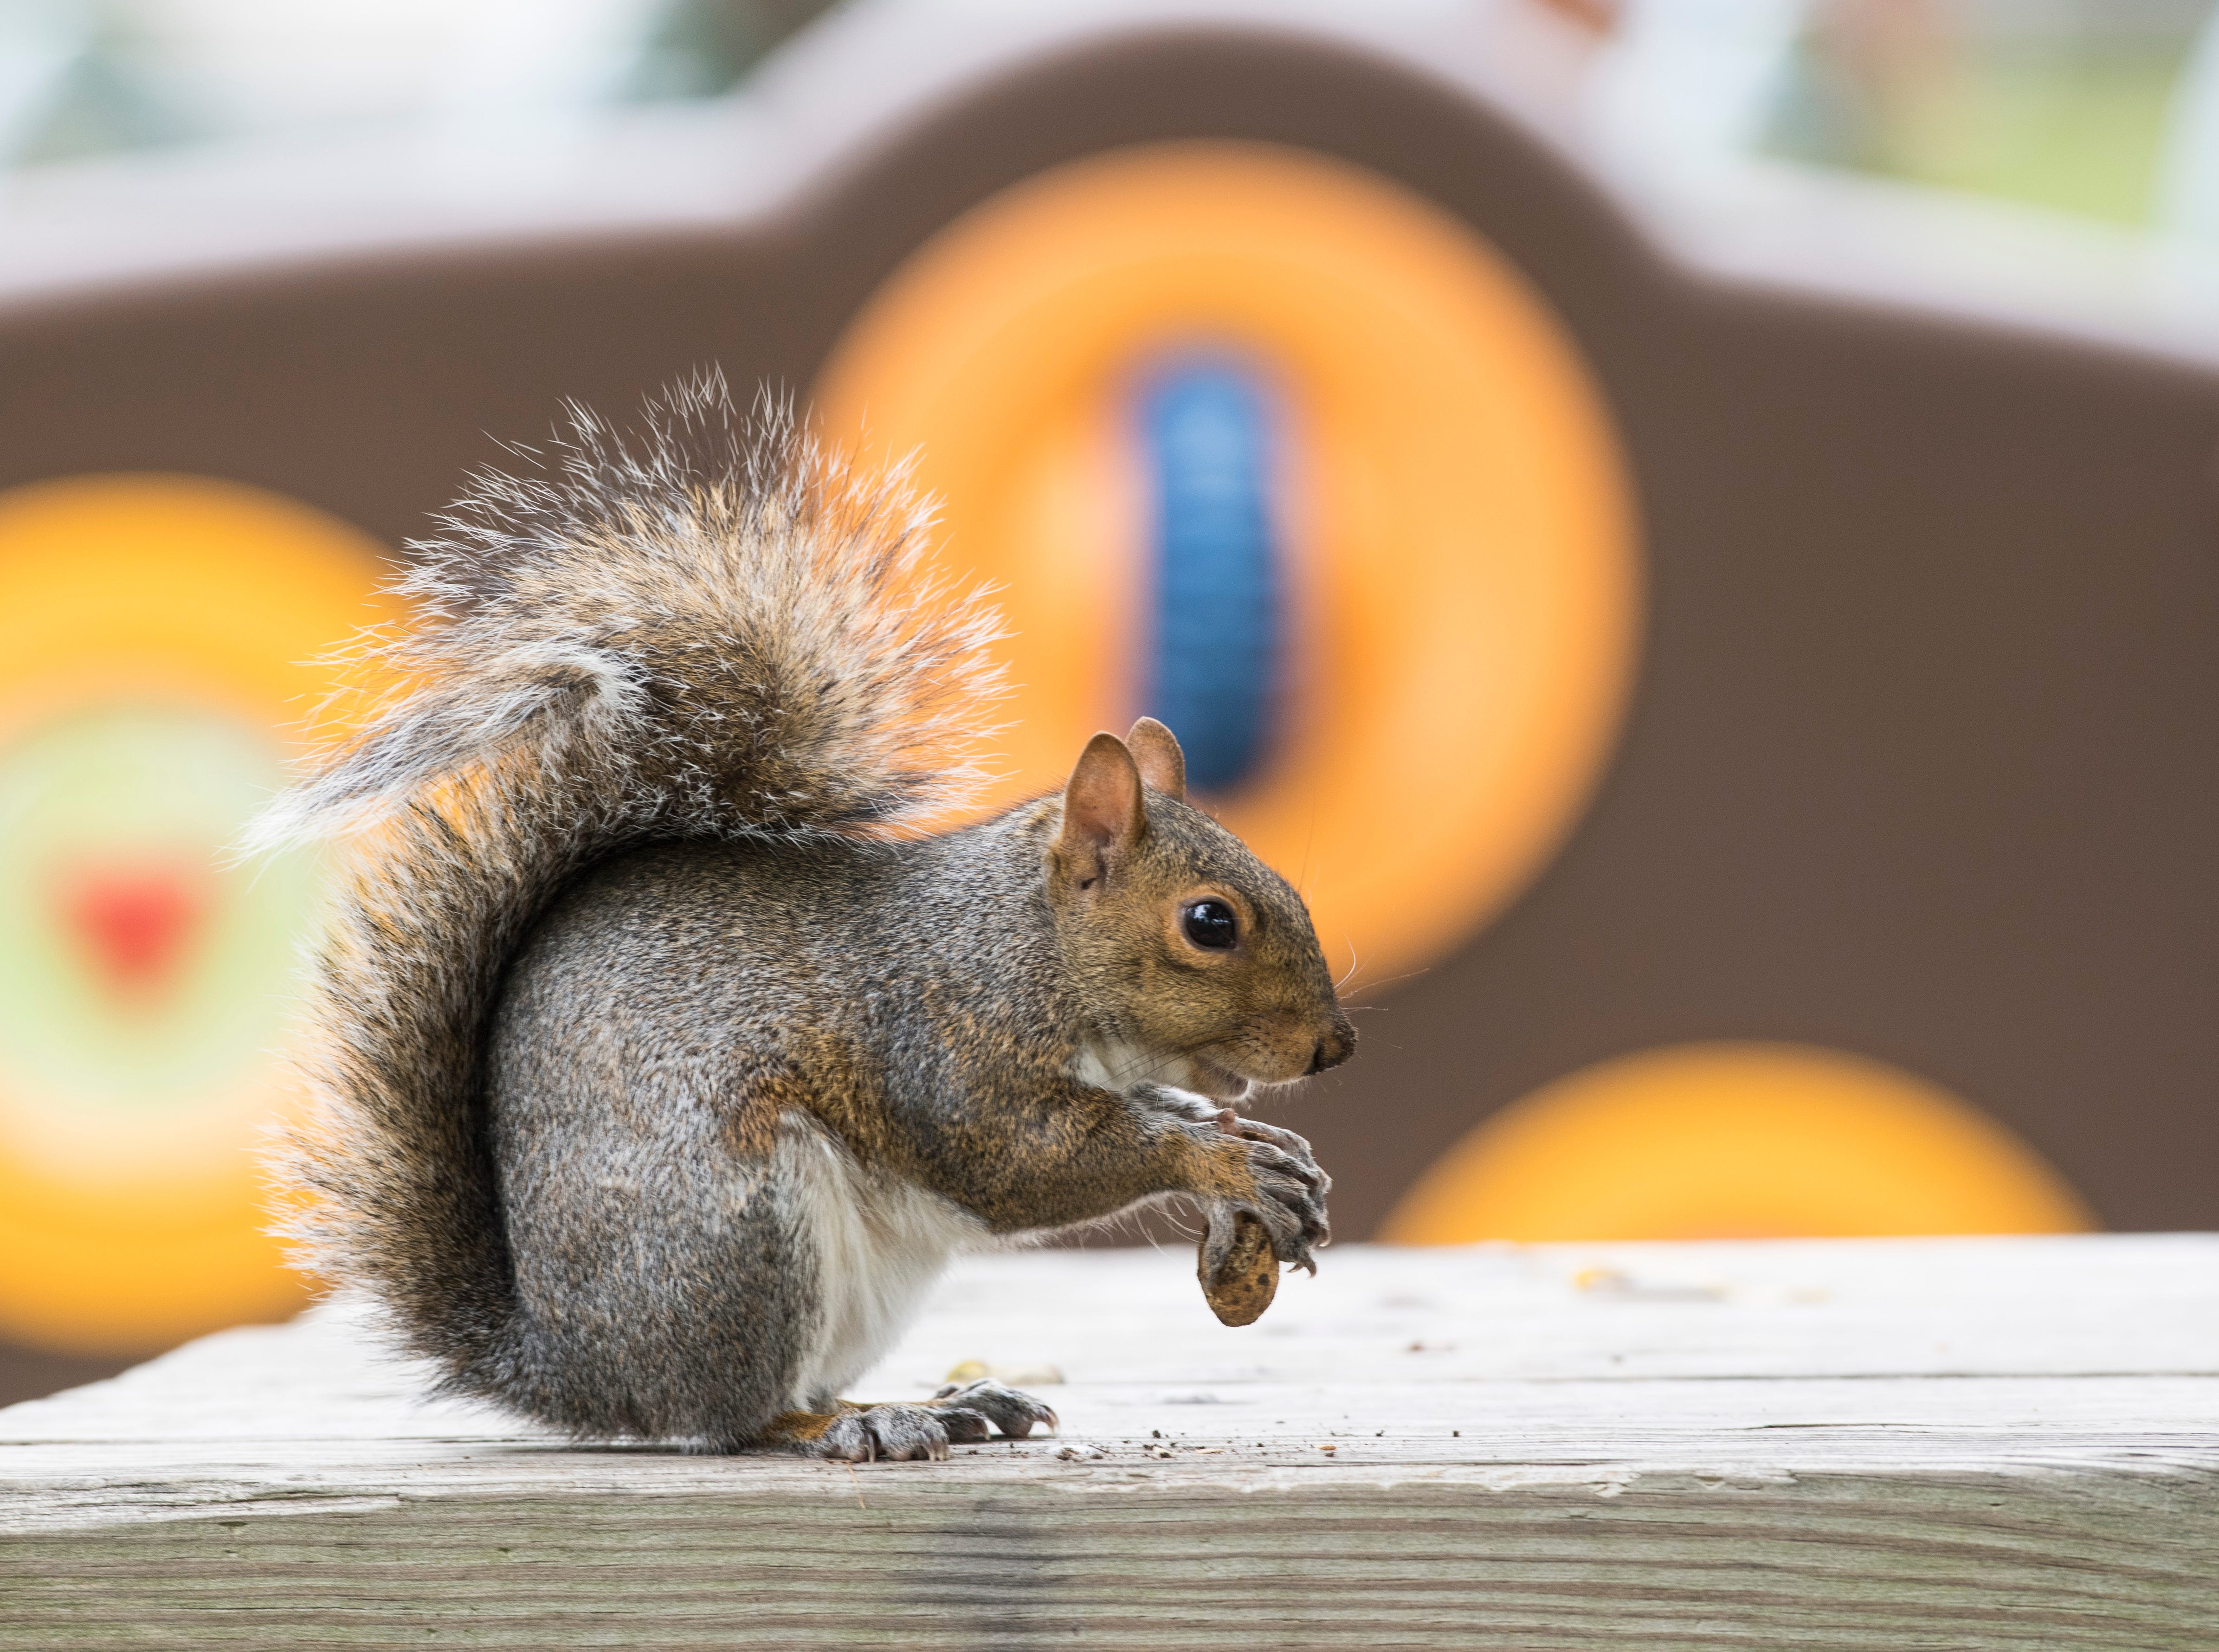 A Fox squirrel is perched on a picnic table in Central Park while munching on a peanut Tuesday, Oct. 16, 2018.